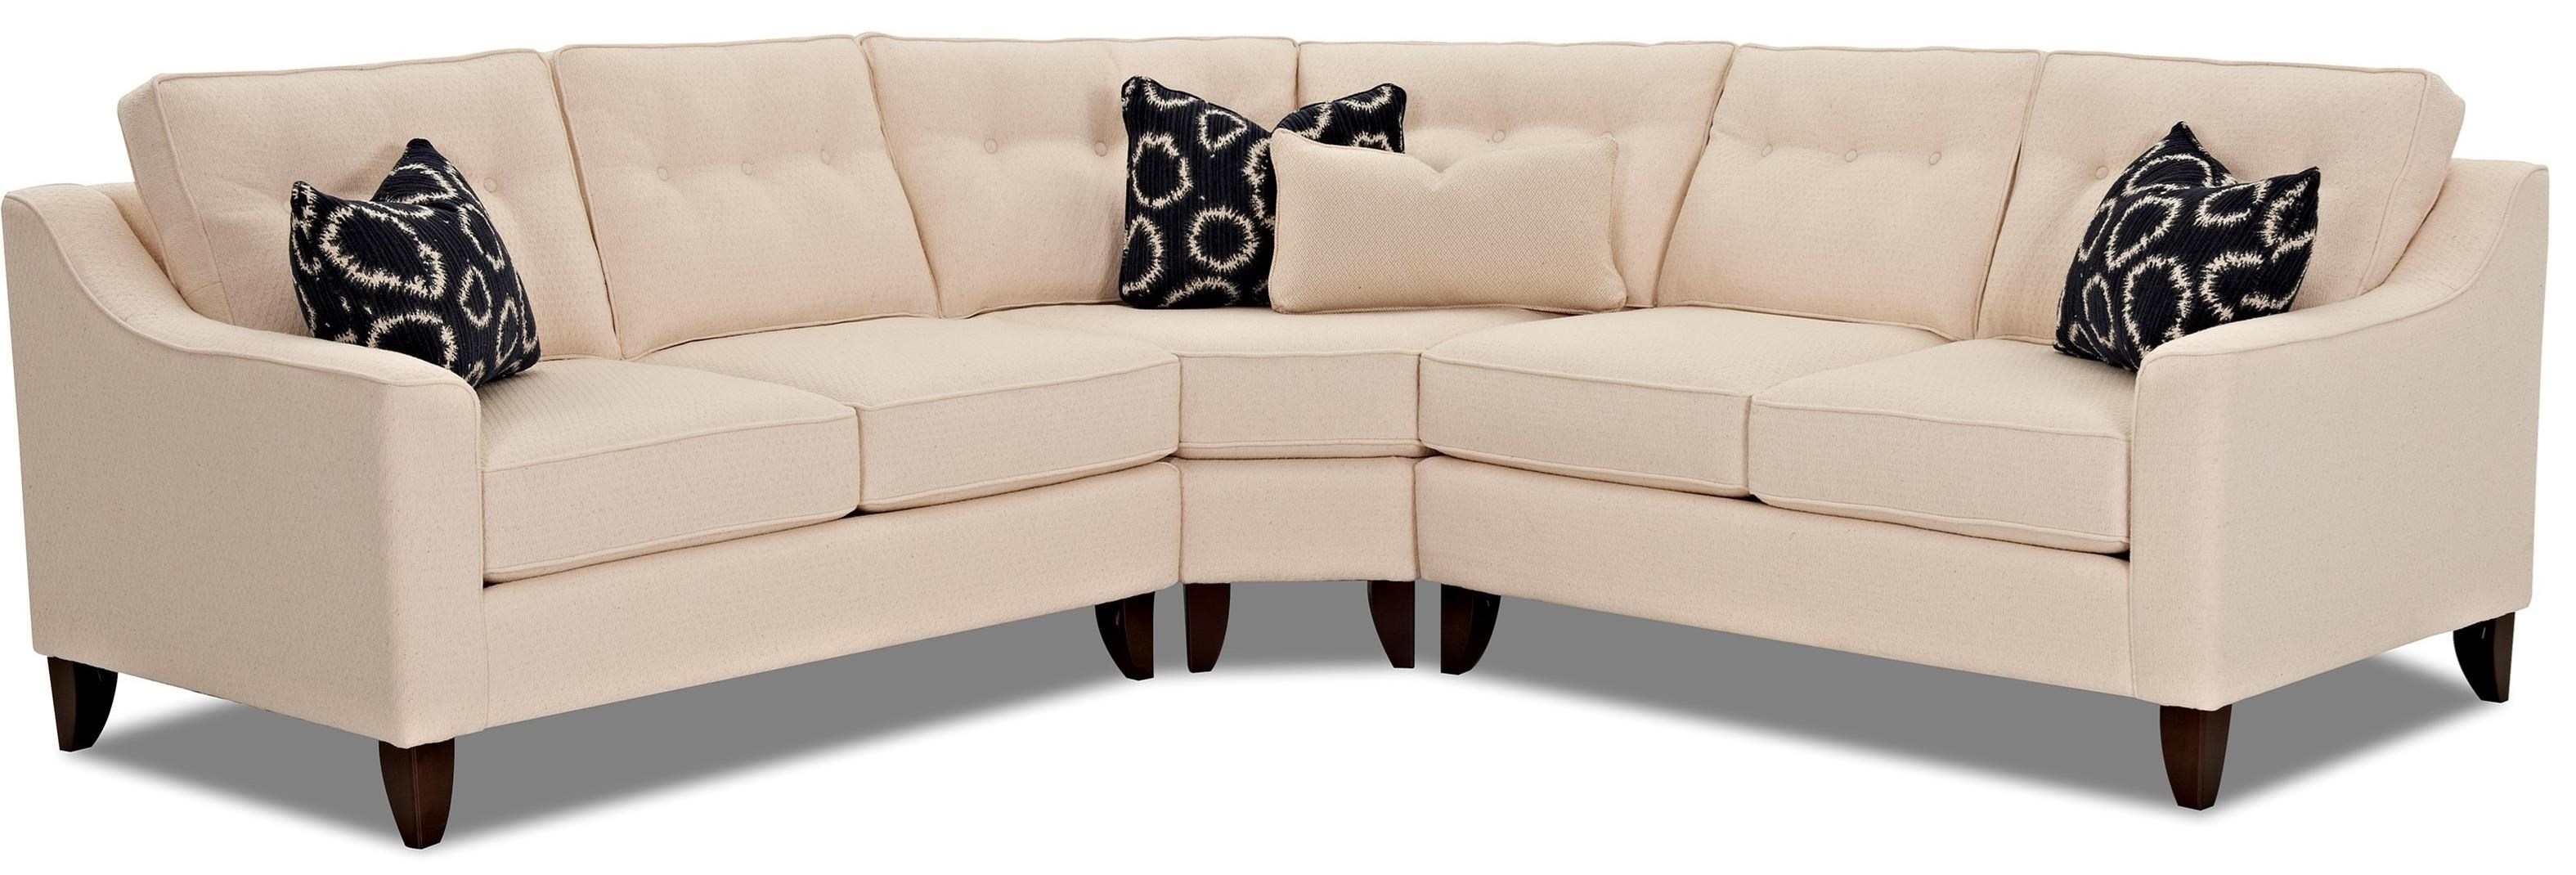 Klaussner Rhea Contemporary 3 Piece Sectional With Wedge